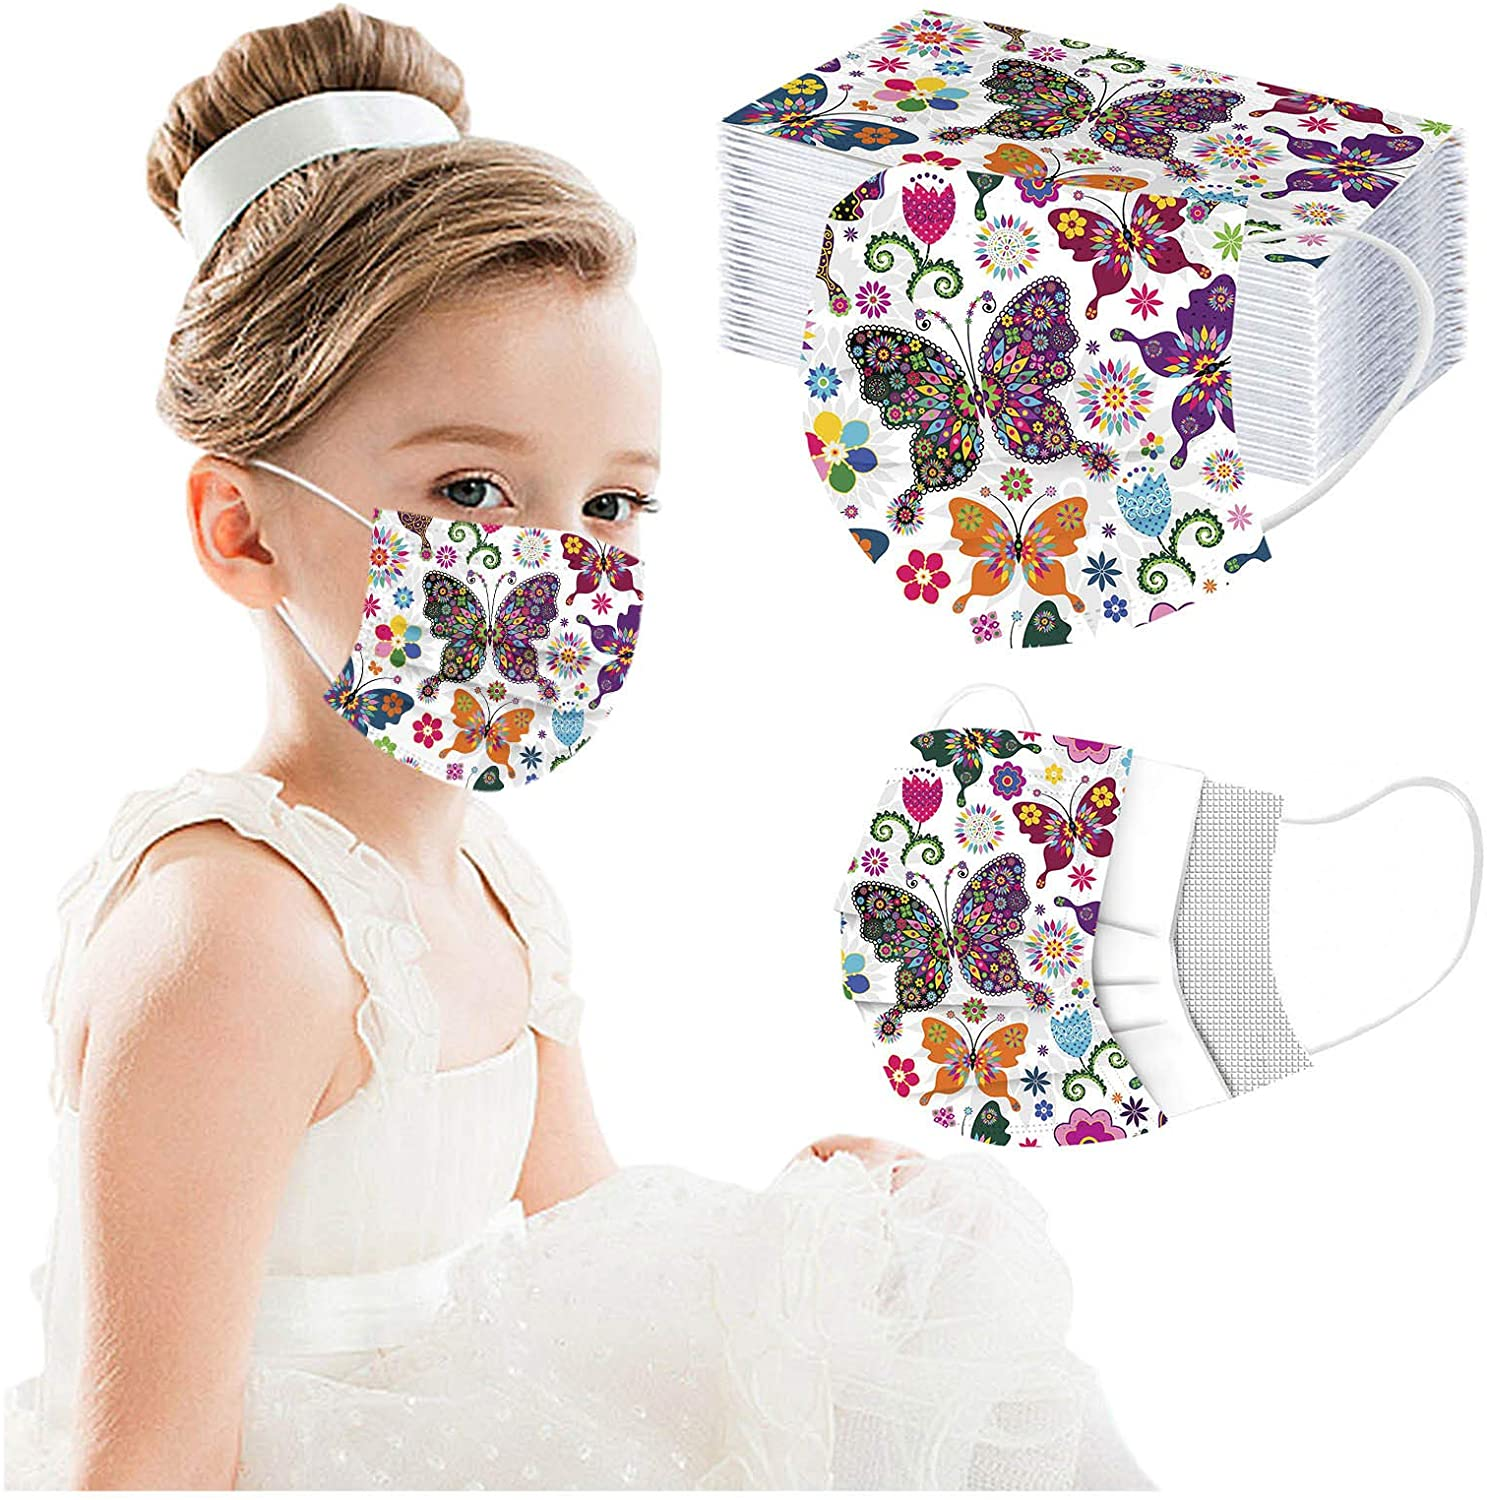 (7-10 Days Arrived) - Kids Butterfuly Printed Disposable Face Bandanas Adjustable Earloop Face Covering 3 Layer Breathable Anti-dust Face_Mask Outdoor Protective